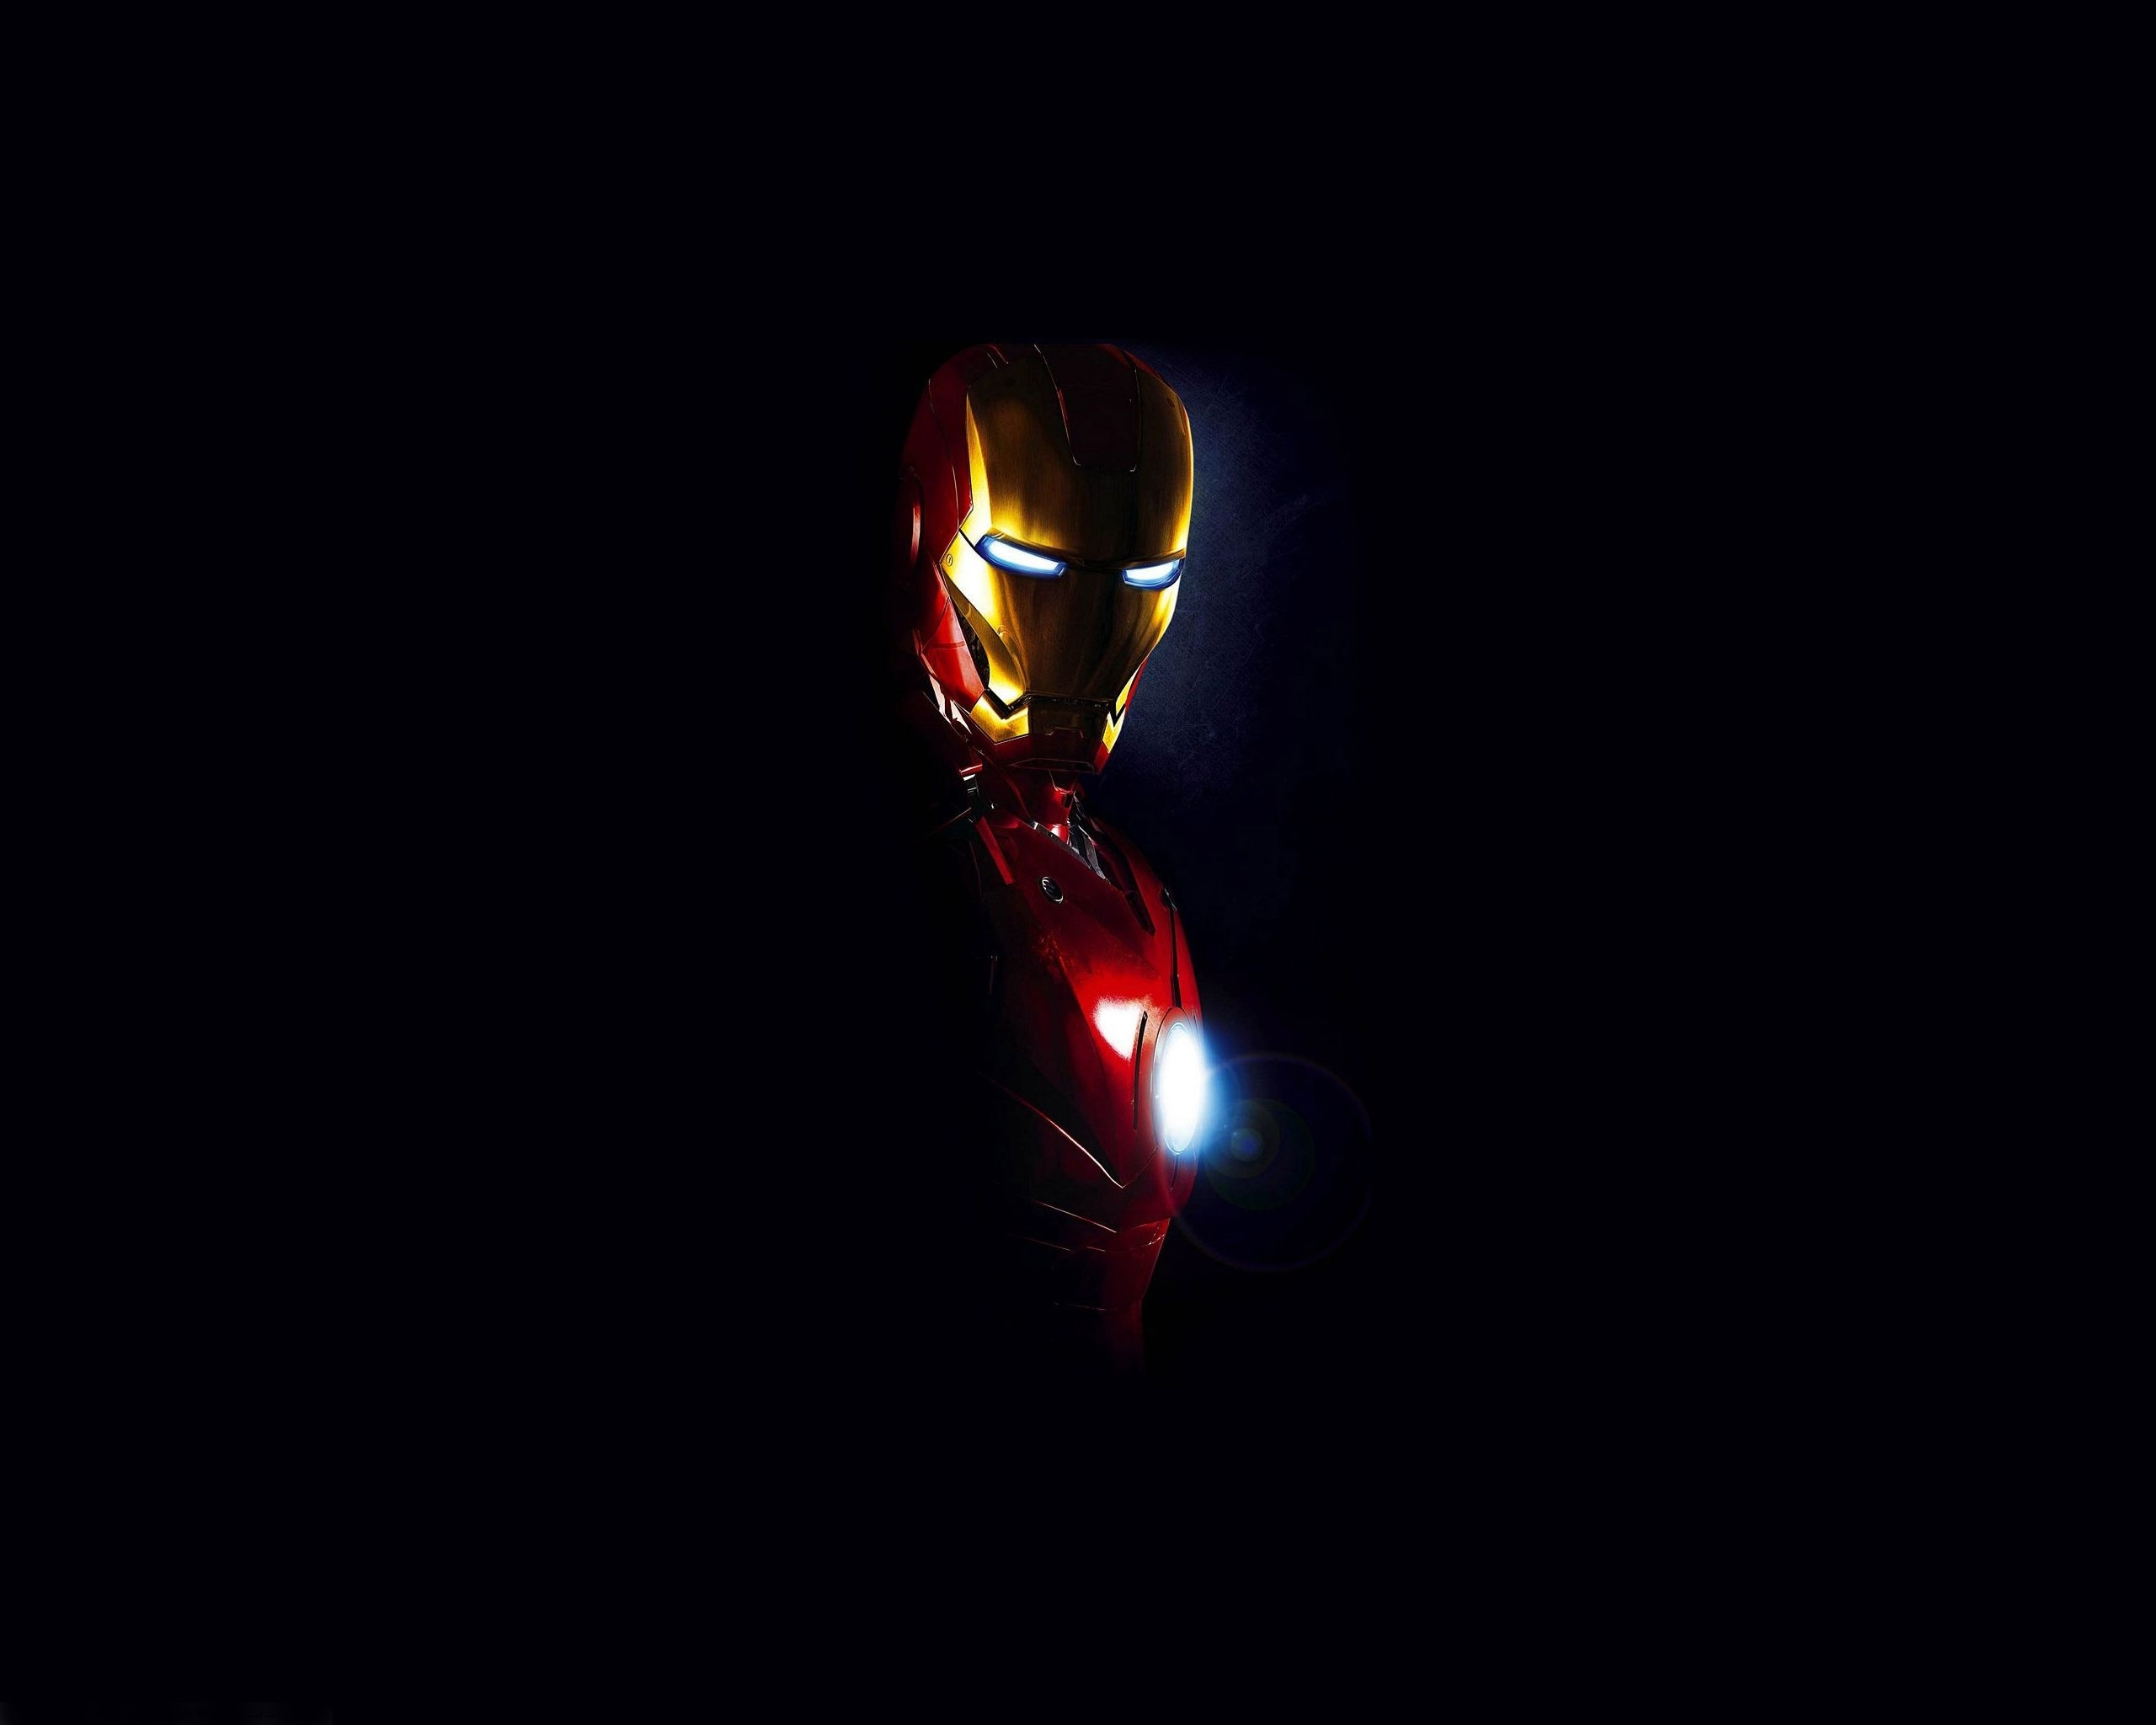 iron man 3 dark face wallpaper hd wallpapers desktop wallpapers 3d